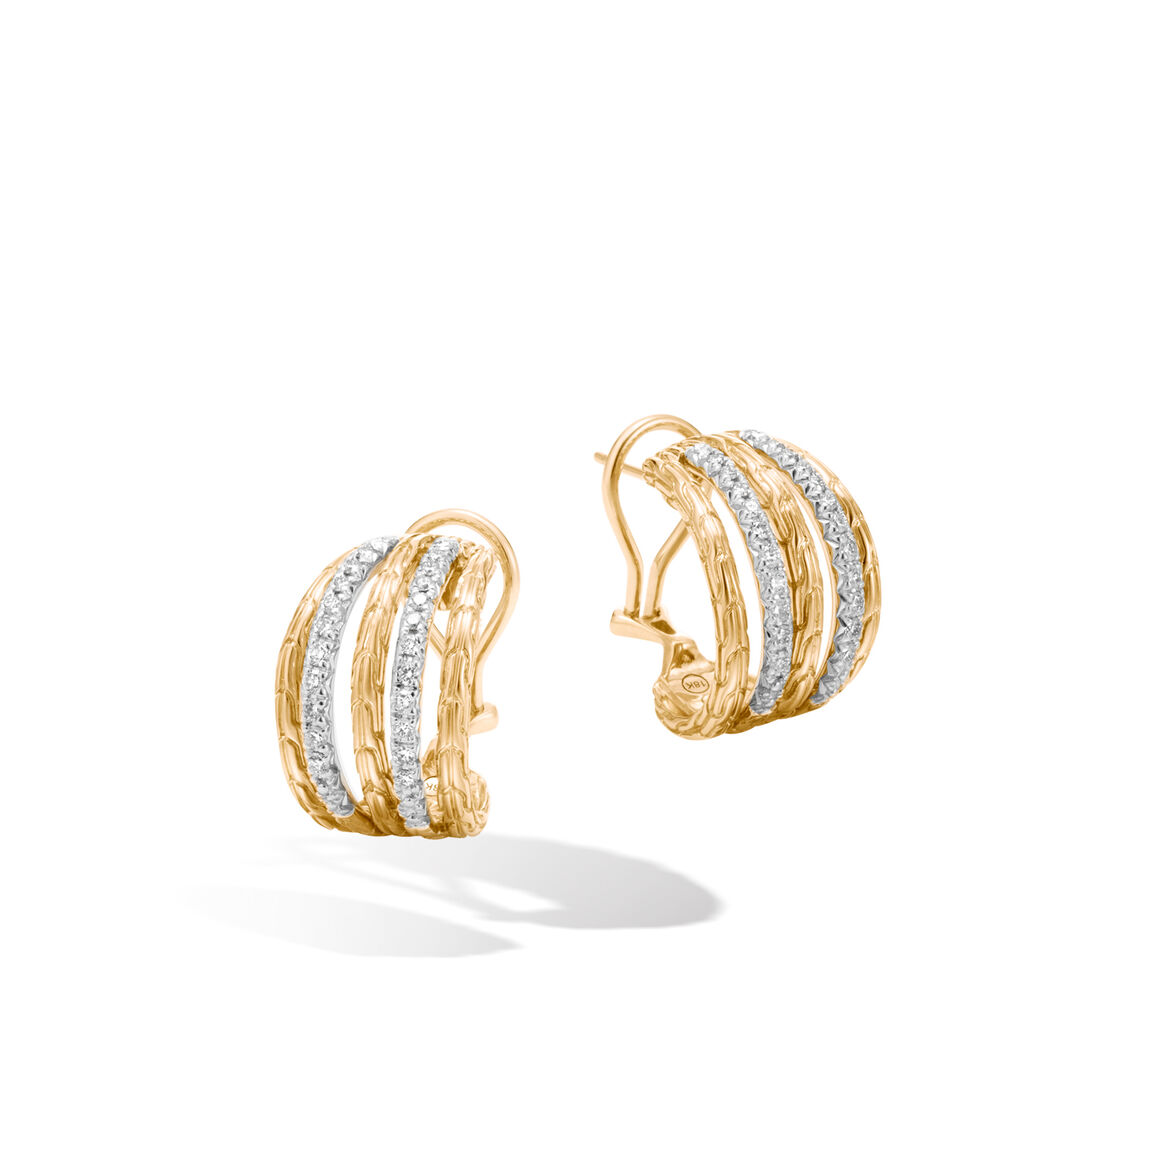 Classic Chain Buddha Belly Earrings in 18K Gold with Diamond